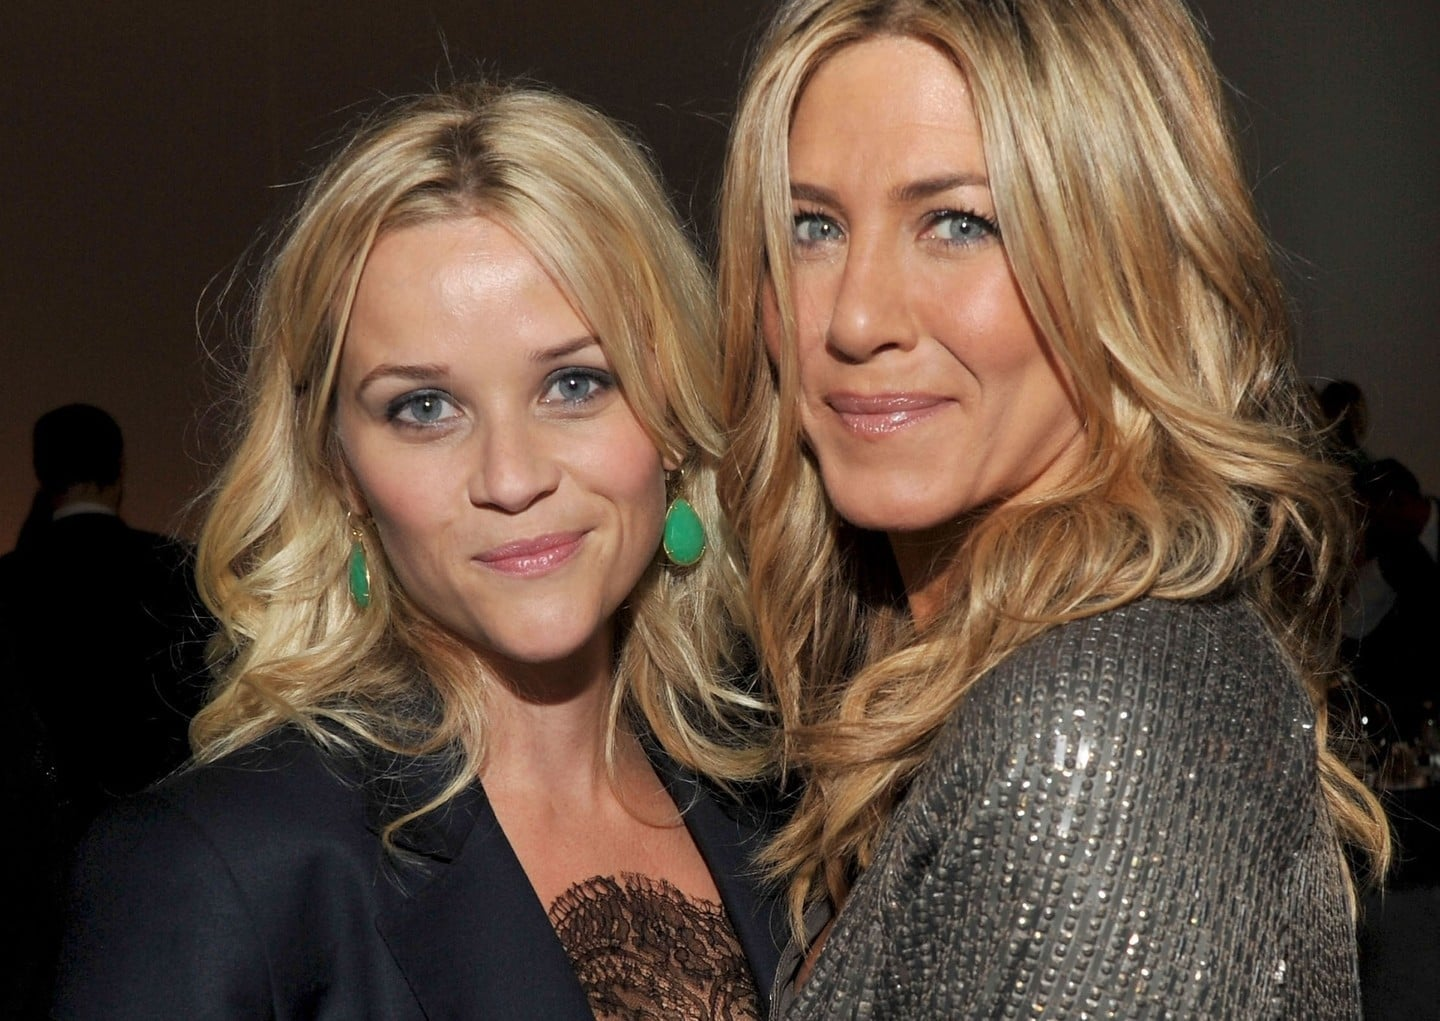 Jennifer Aniston and Reese Witherspoon